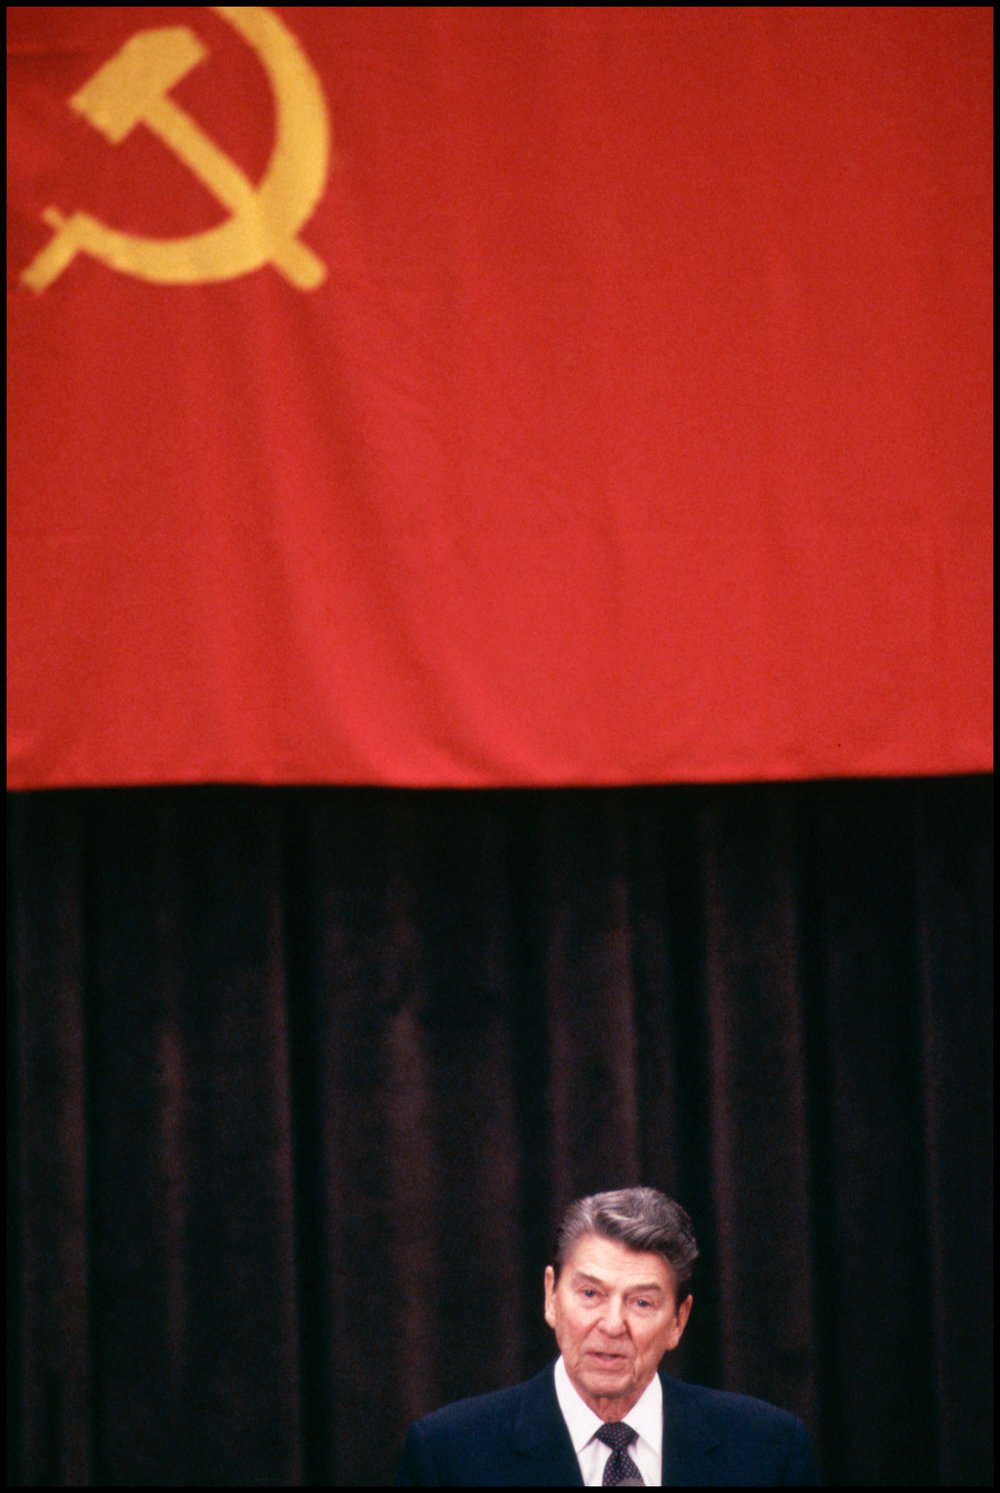 21 Oct 1985, Moscow, Russia --- United States president Ronald Reagan speaks at a US/USSR summit.